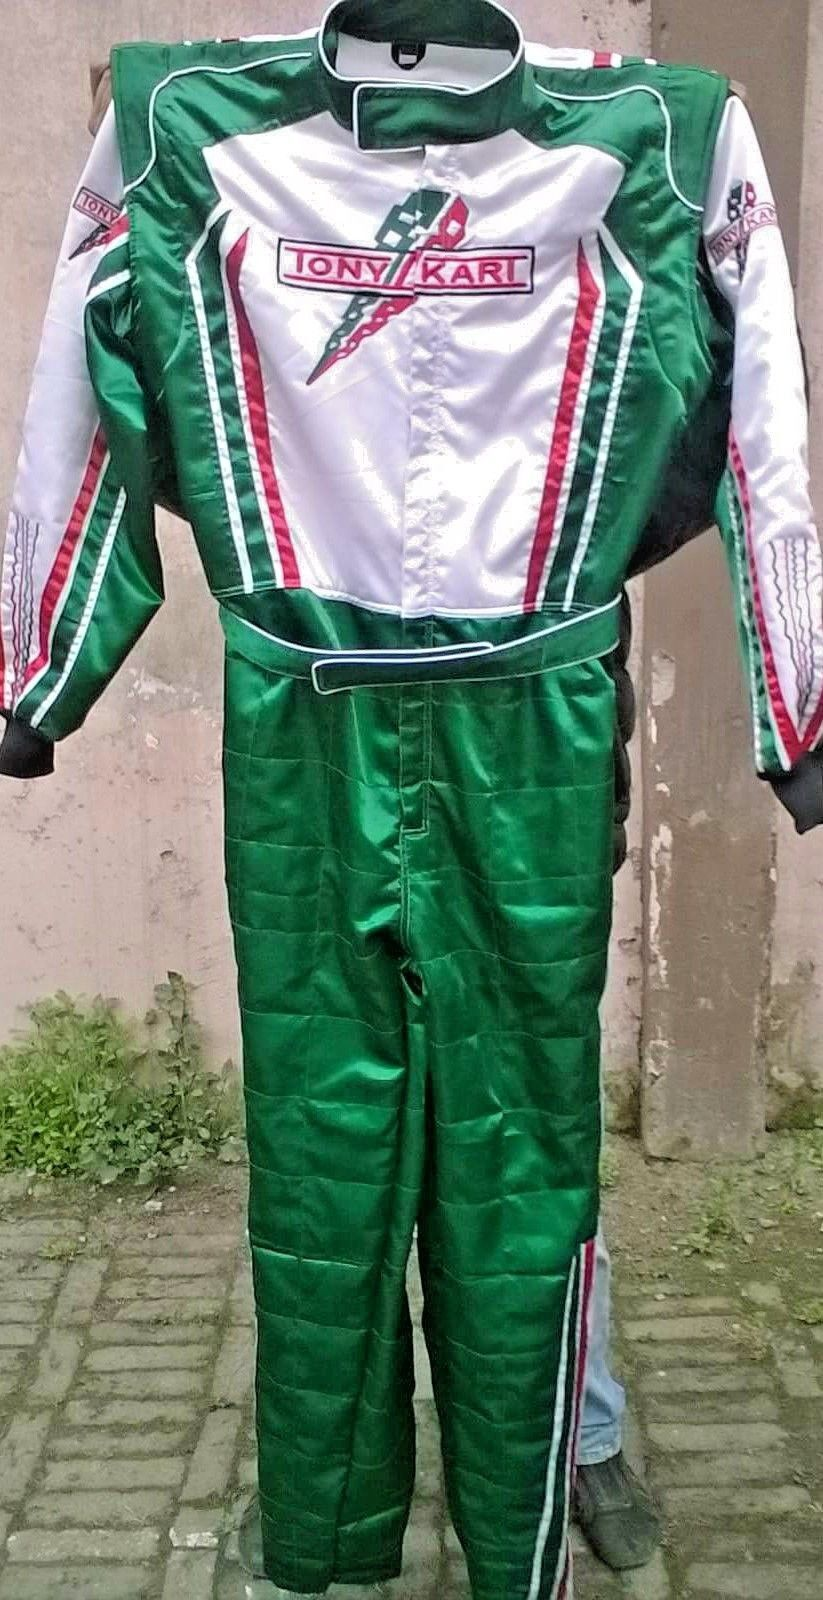 Tony Kart  Go Kart Race Suit CIK FIA Level 2  all in high quality and low price